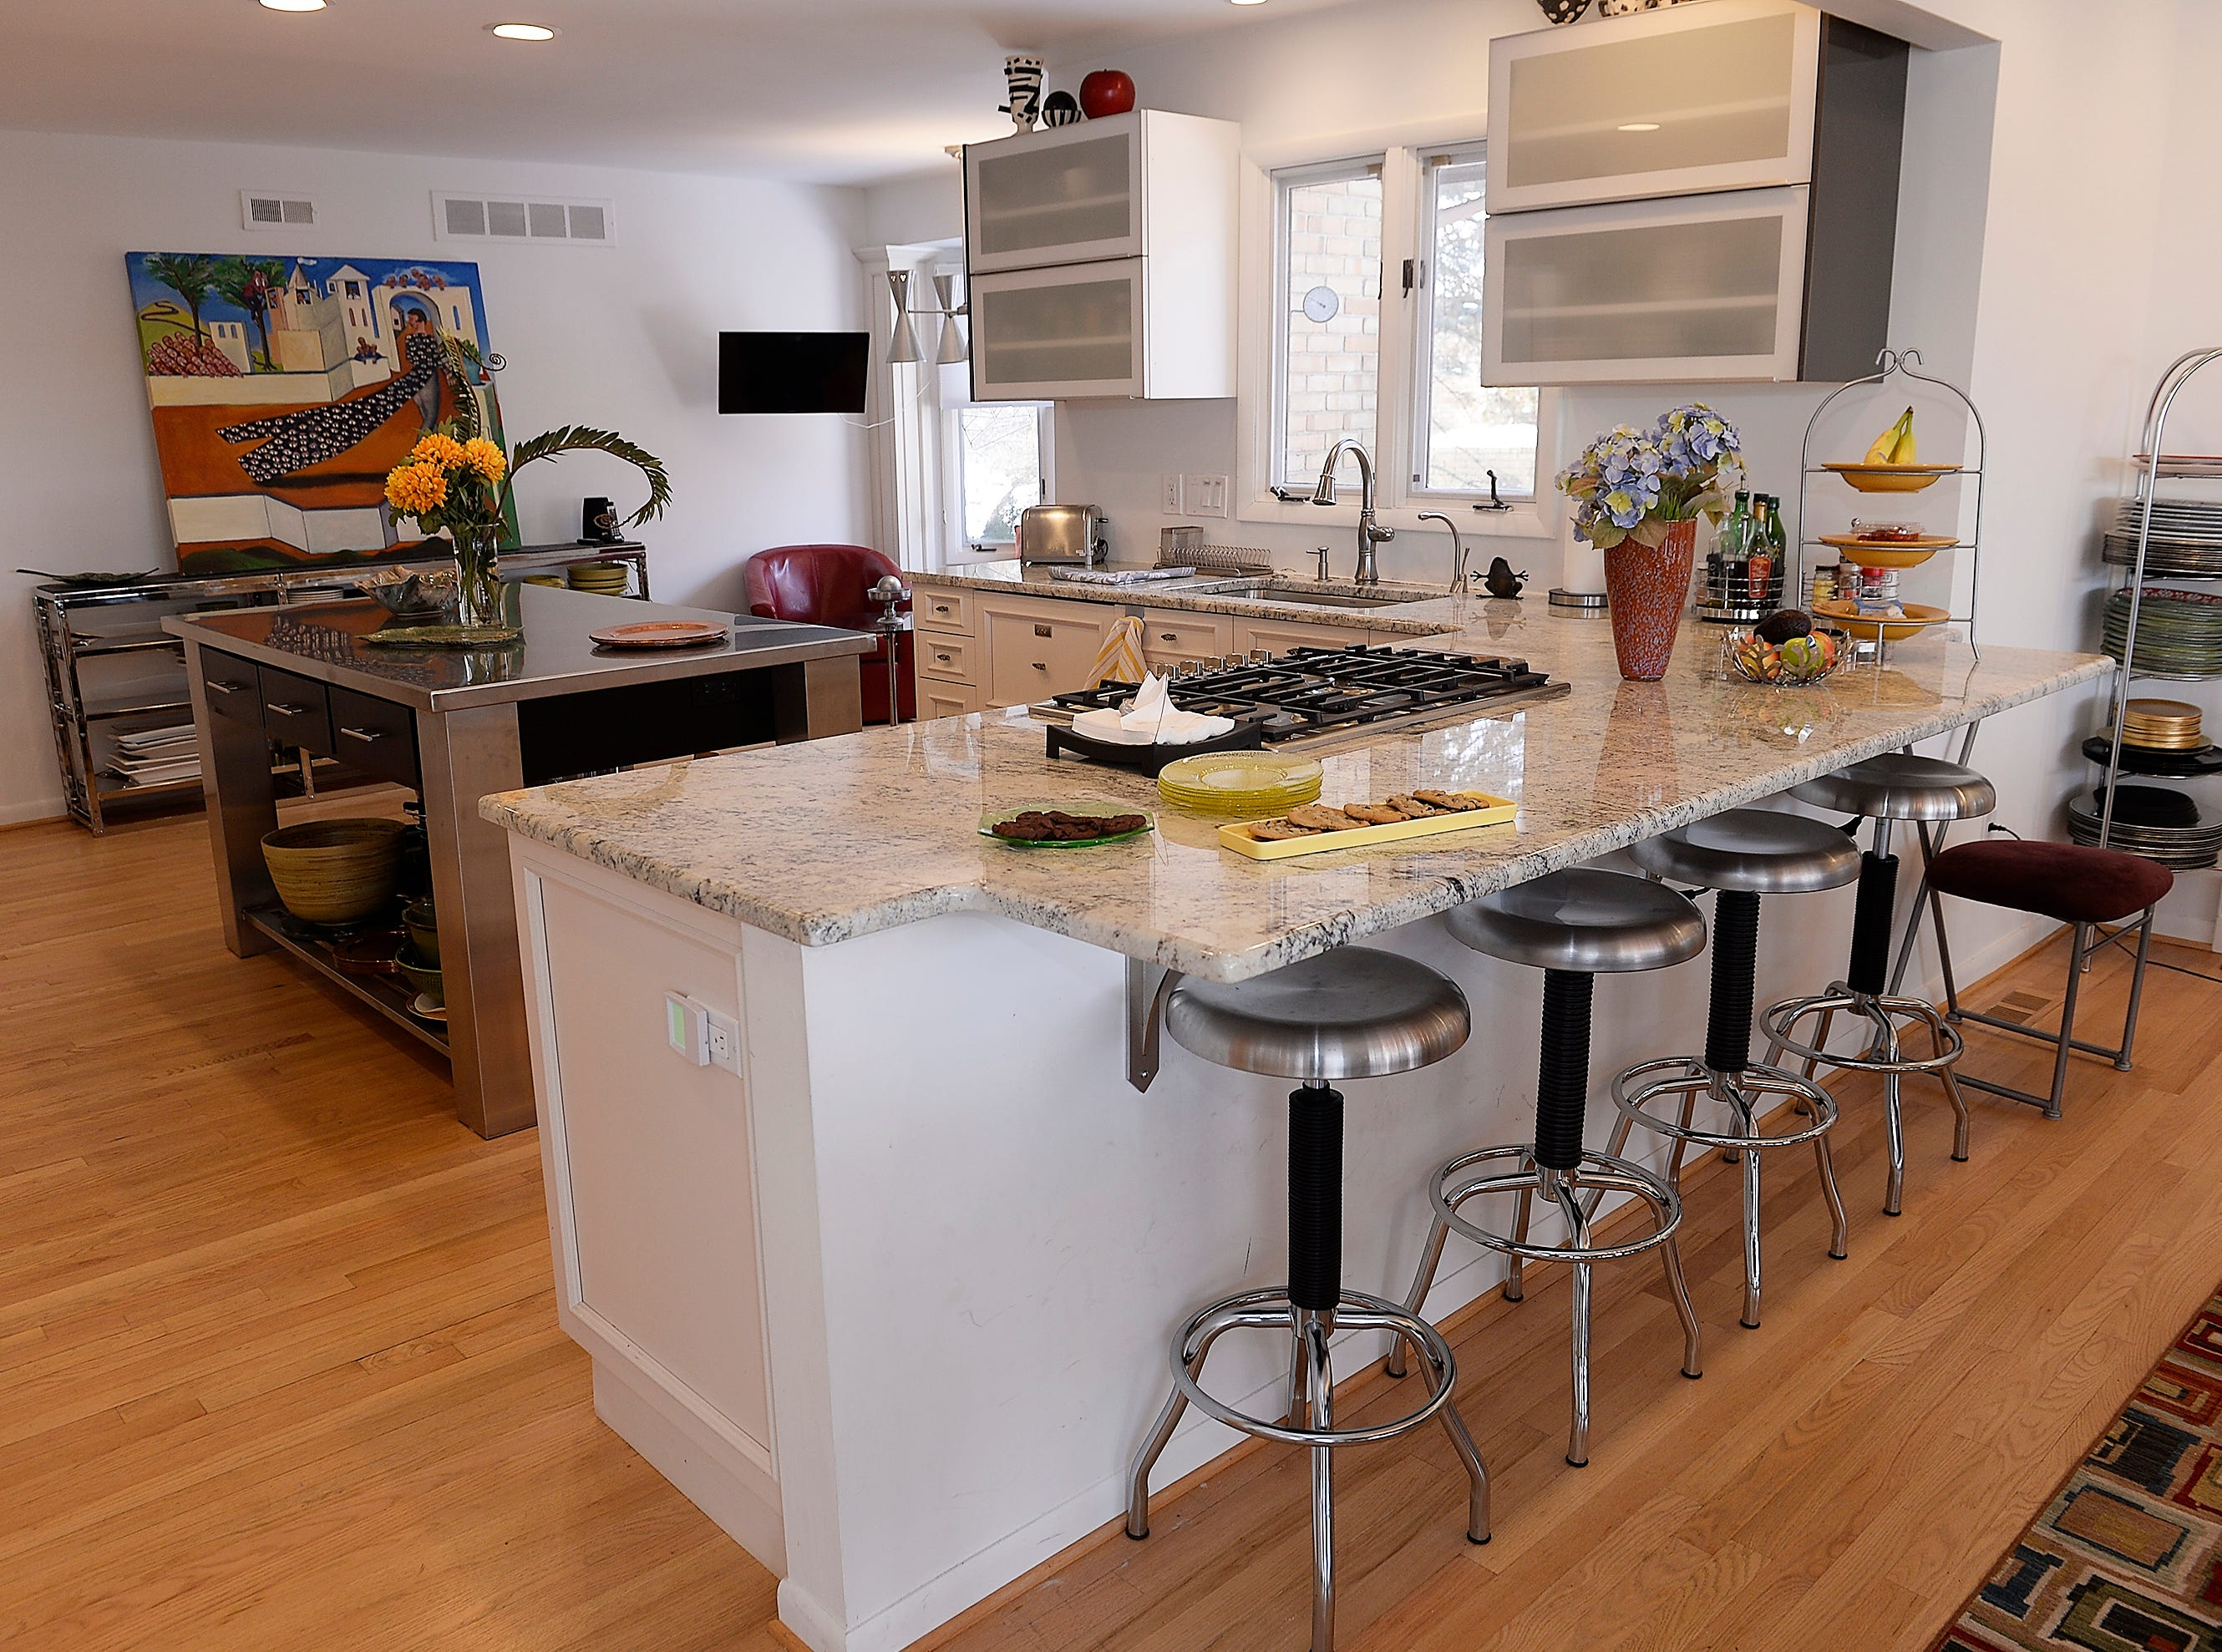 A new counter top bar sits inside the kitchen.